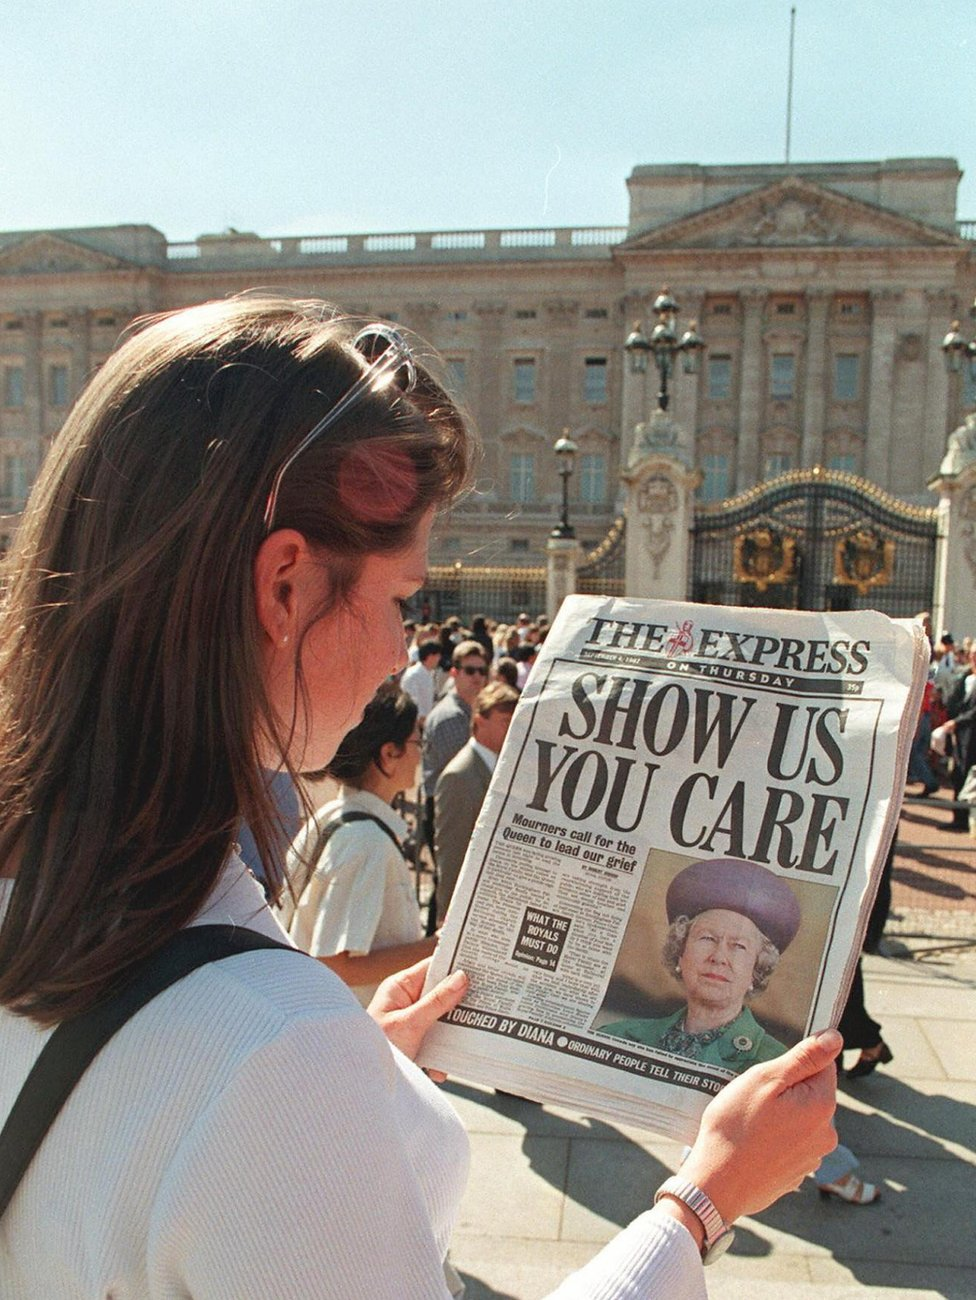 A woman reads a newspaper headline from 4 September 1997, criticising the Queen's silence since the death of Diana, Princess of Wales, the previous weekend